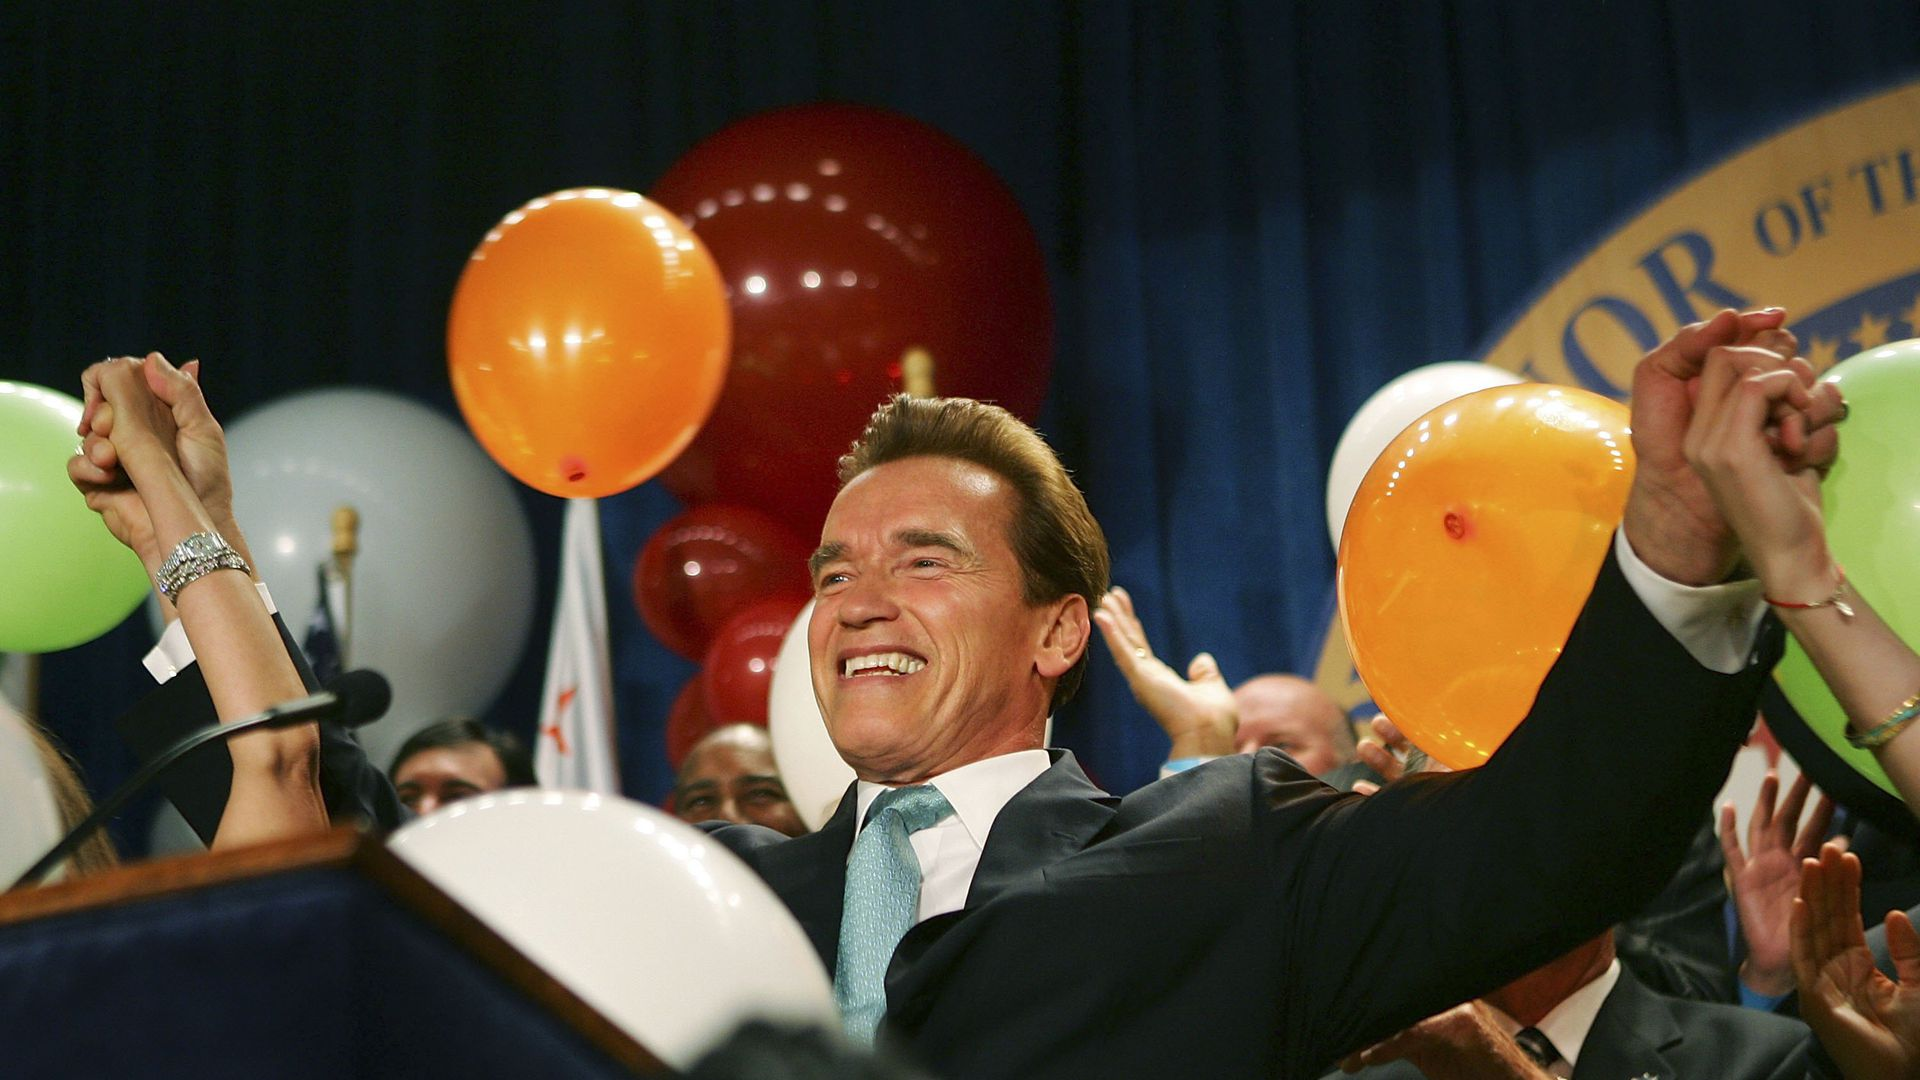 Schwarzenegger throws his hands in the air at a victory party